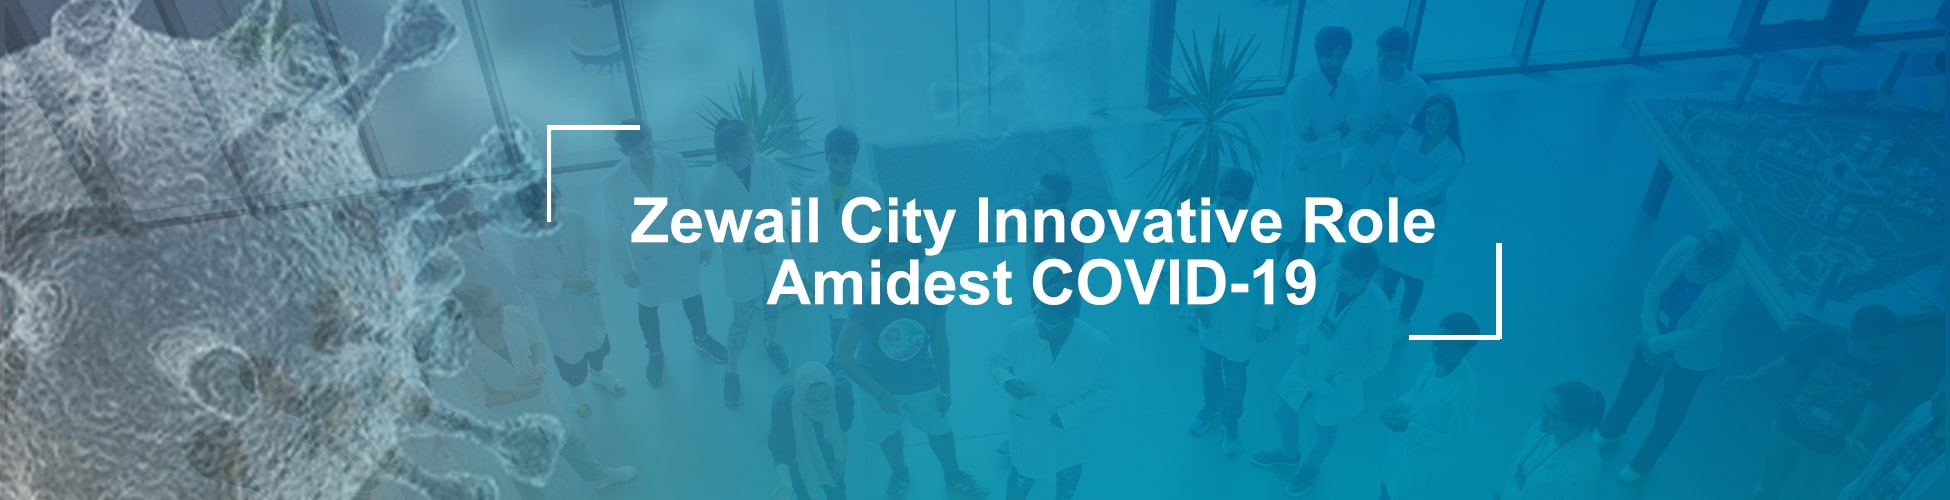 Zewail City Innovation Role Amidst COVID-19 Pandemic